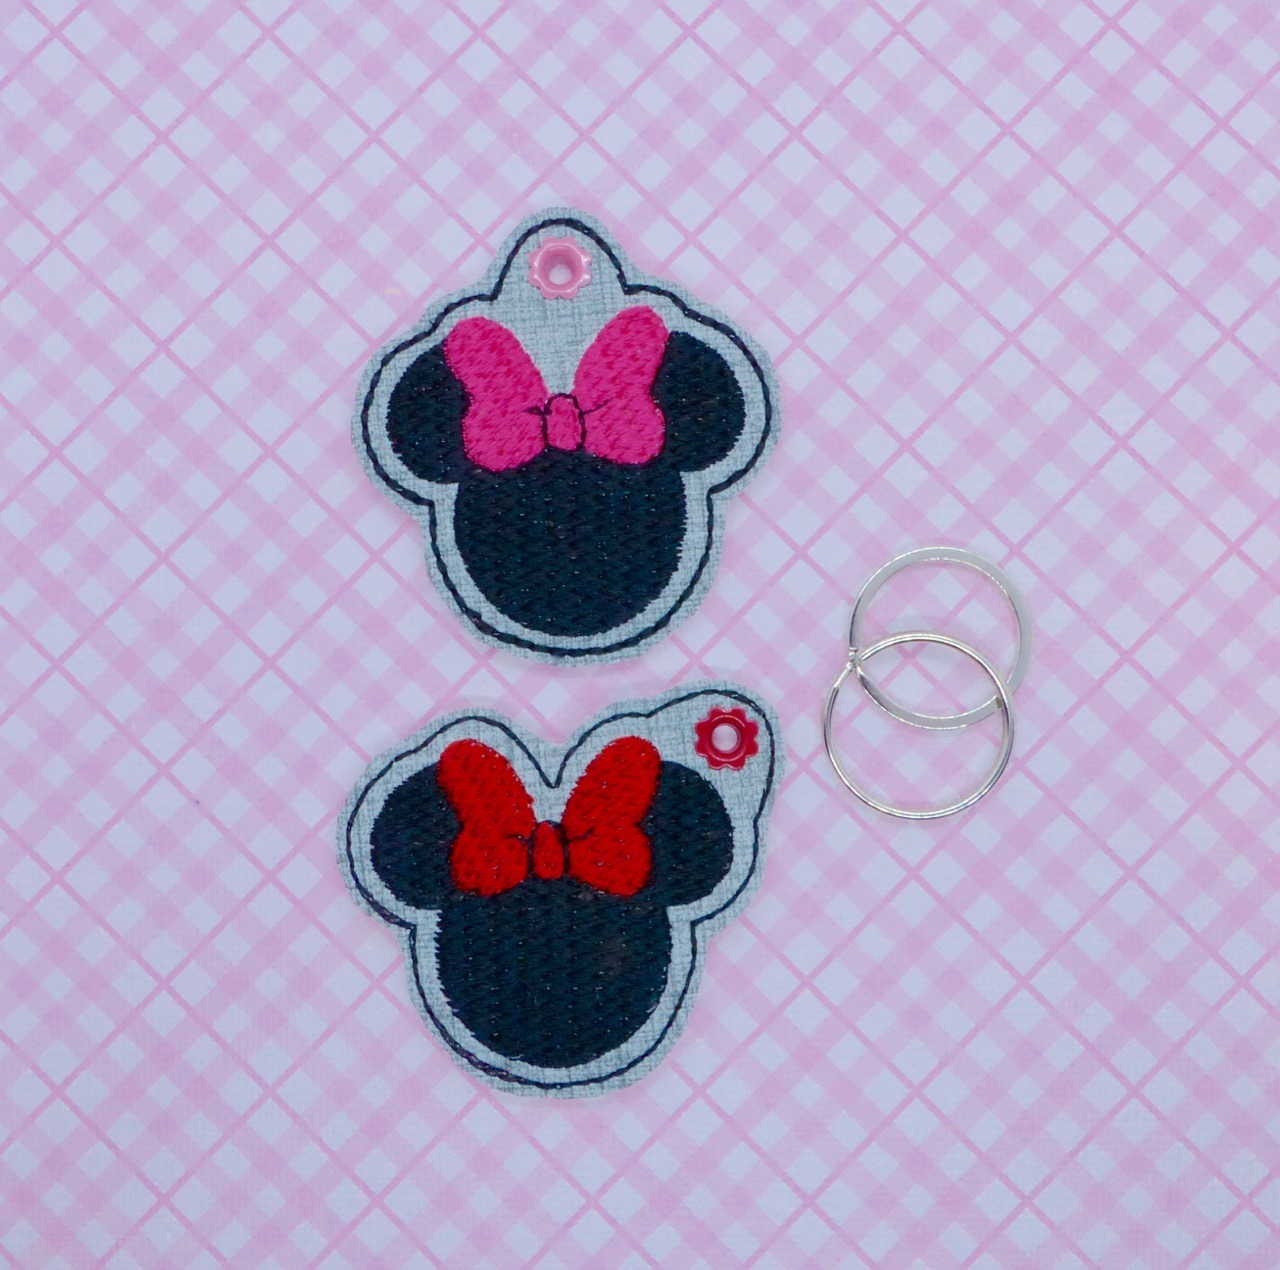 Mrs Mouse Zipper Pulls Embroidery Design